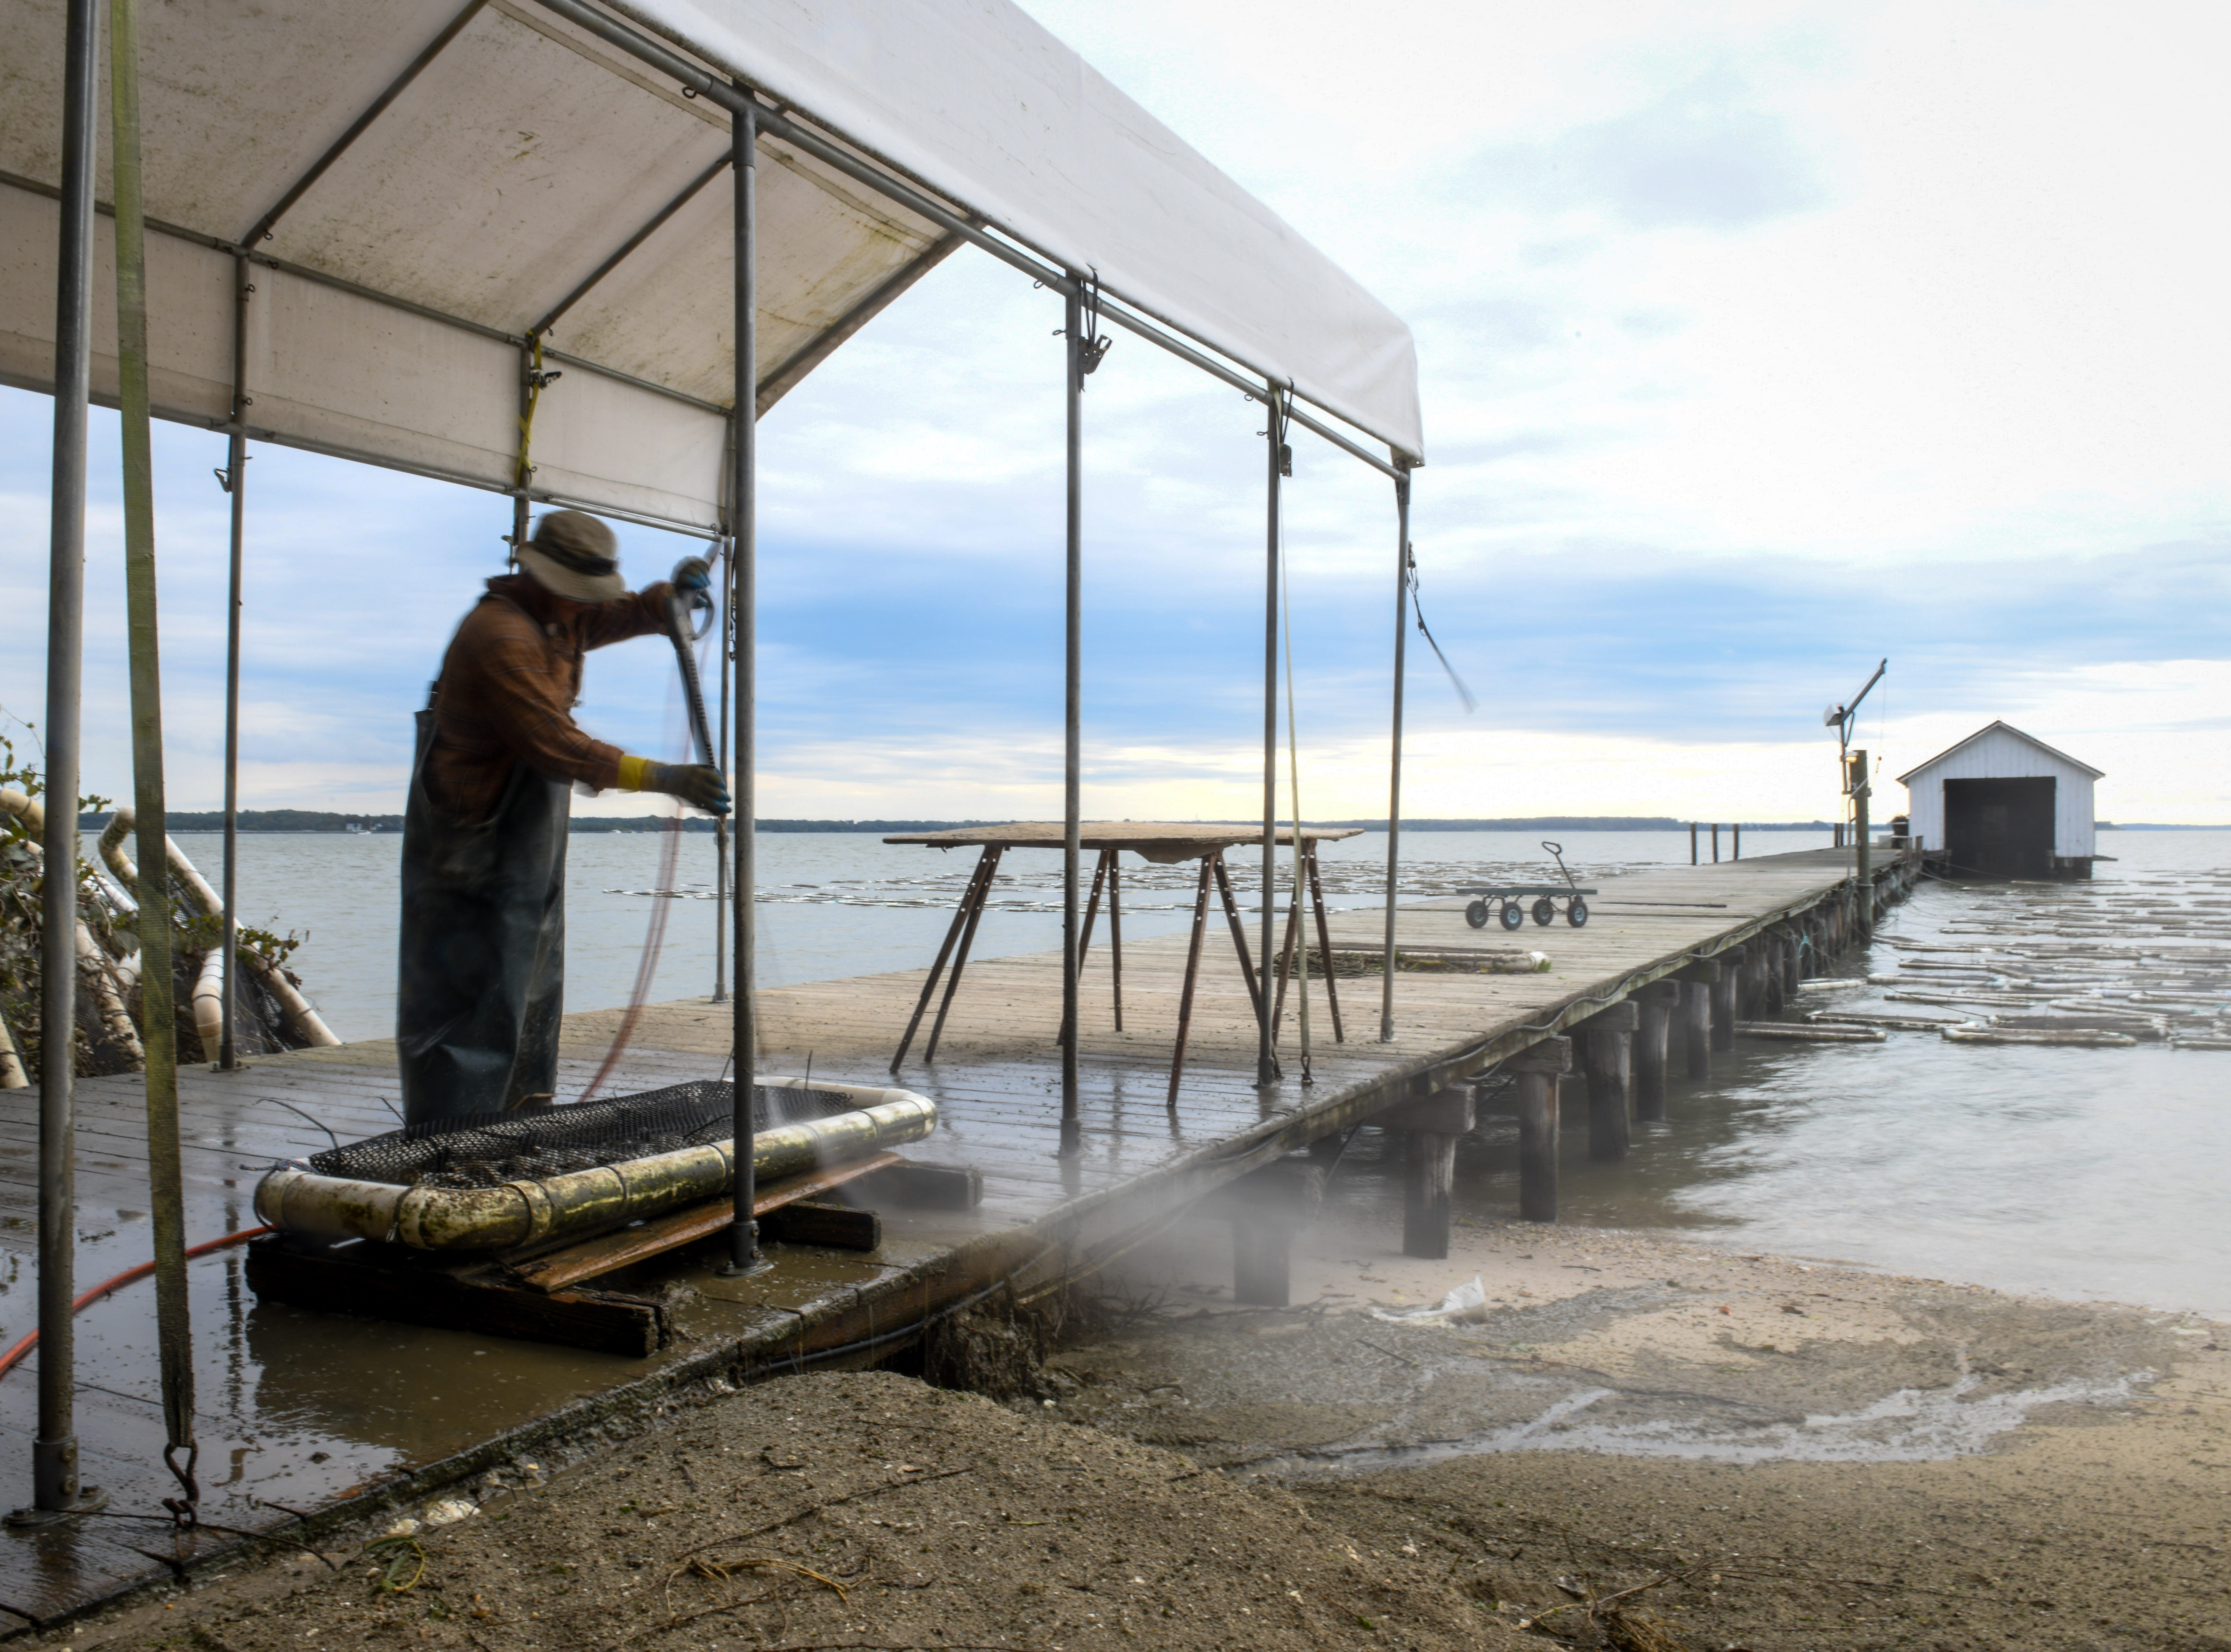 Colin Golden of the Choptank Oyster Company washes oysters on the shore of the Chesapeake Bay near Cambridge on Thursday, Sept 27, 2018.